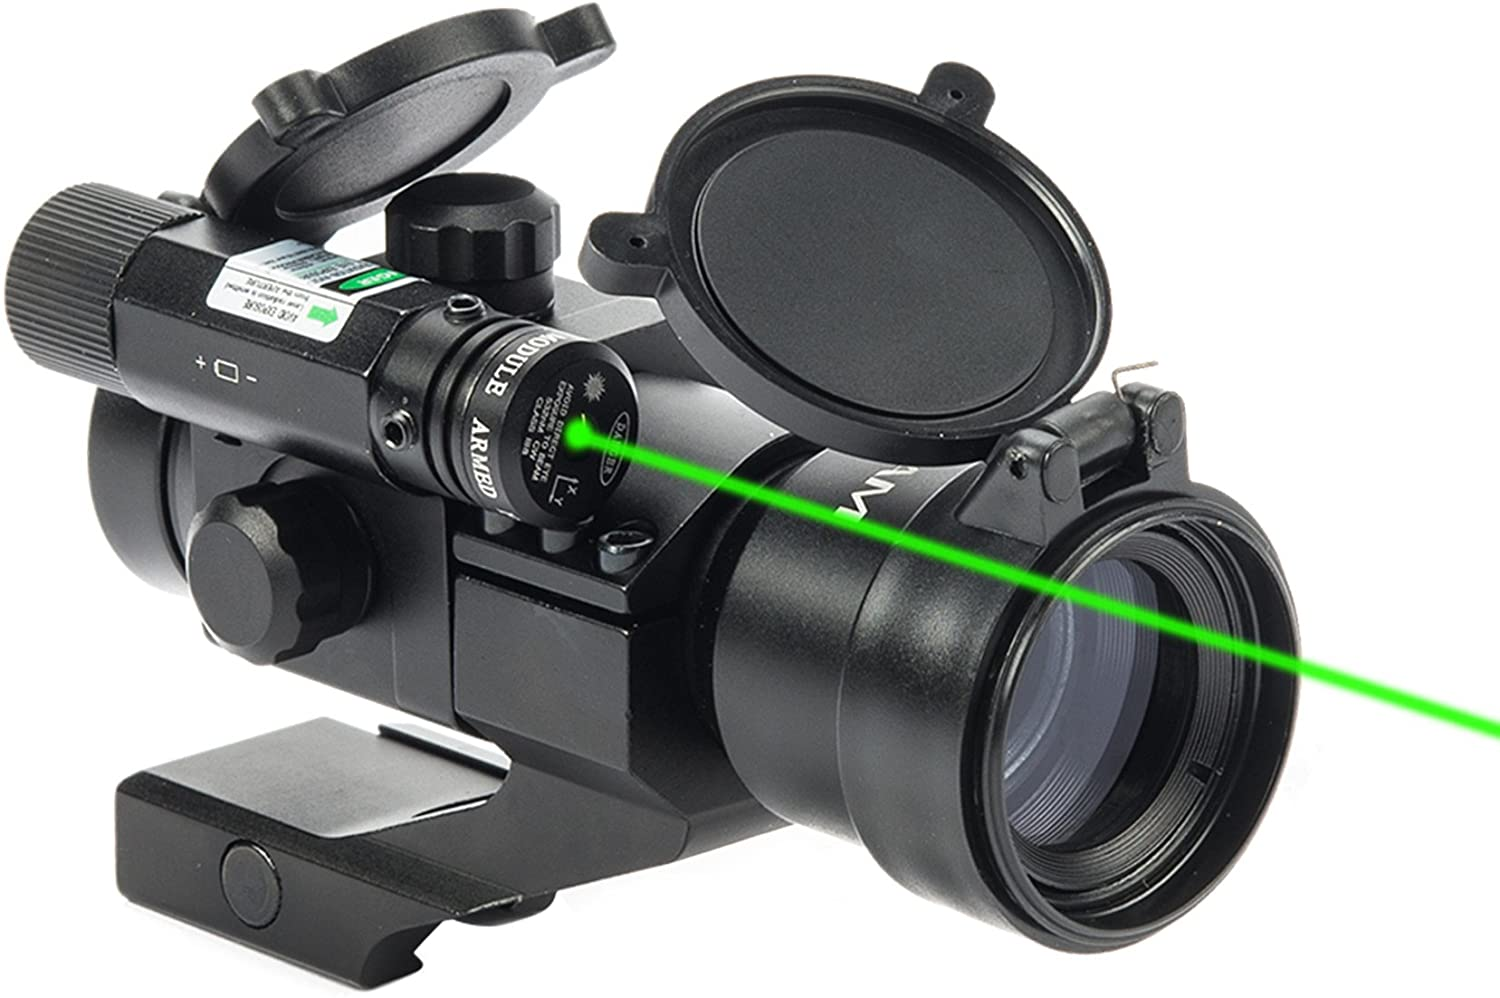 Hiram 1X30 4 MOA Green Red Dot Sight for Rifles with Green Laser, Picatinny Cantilever PEPR Mount : Sports & Outdoors